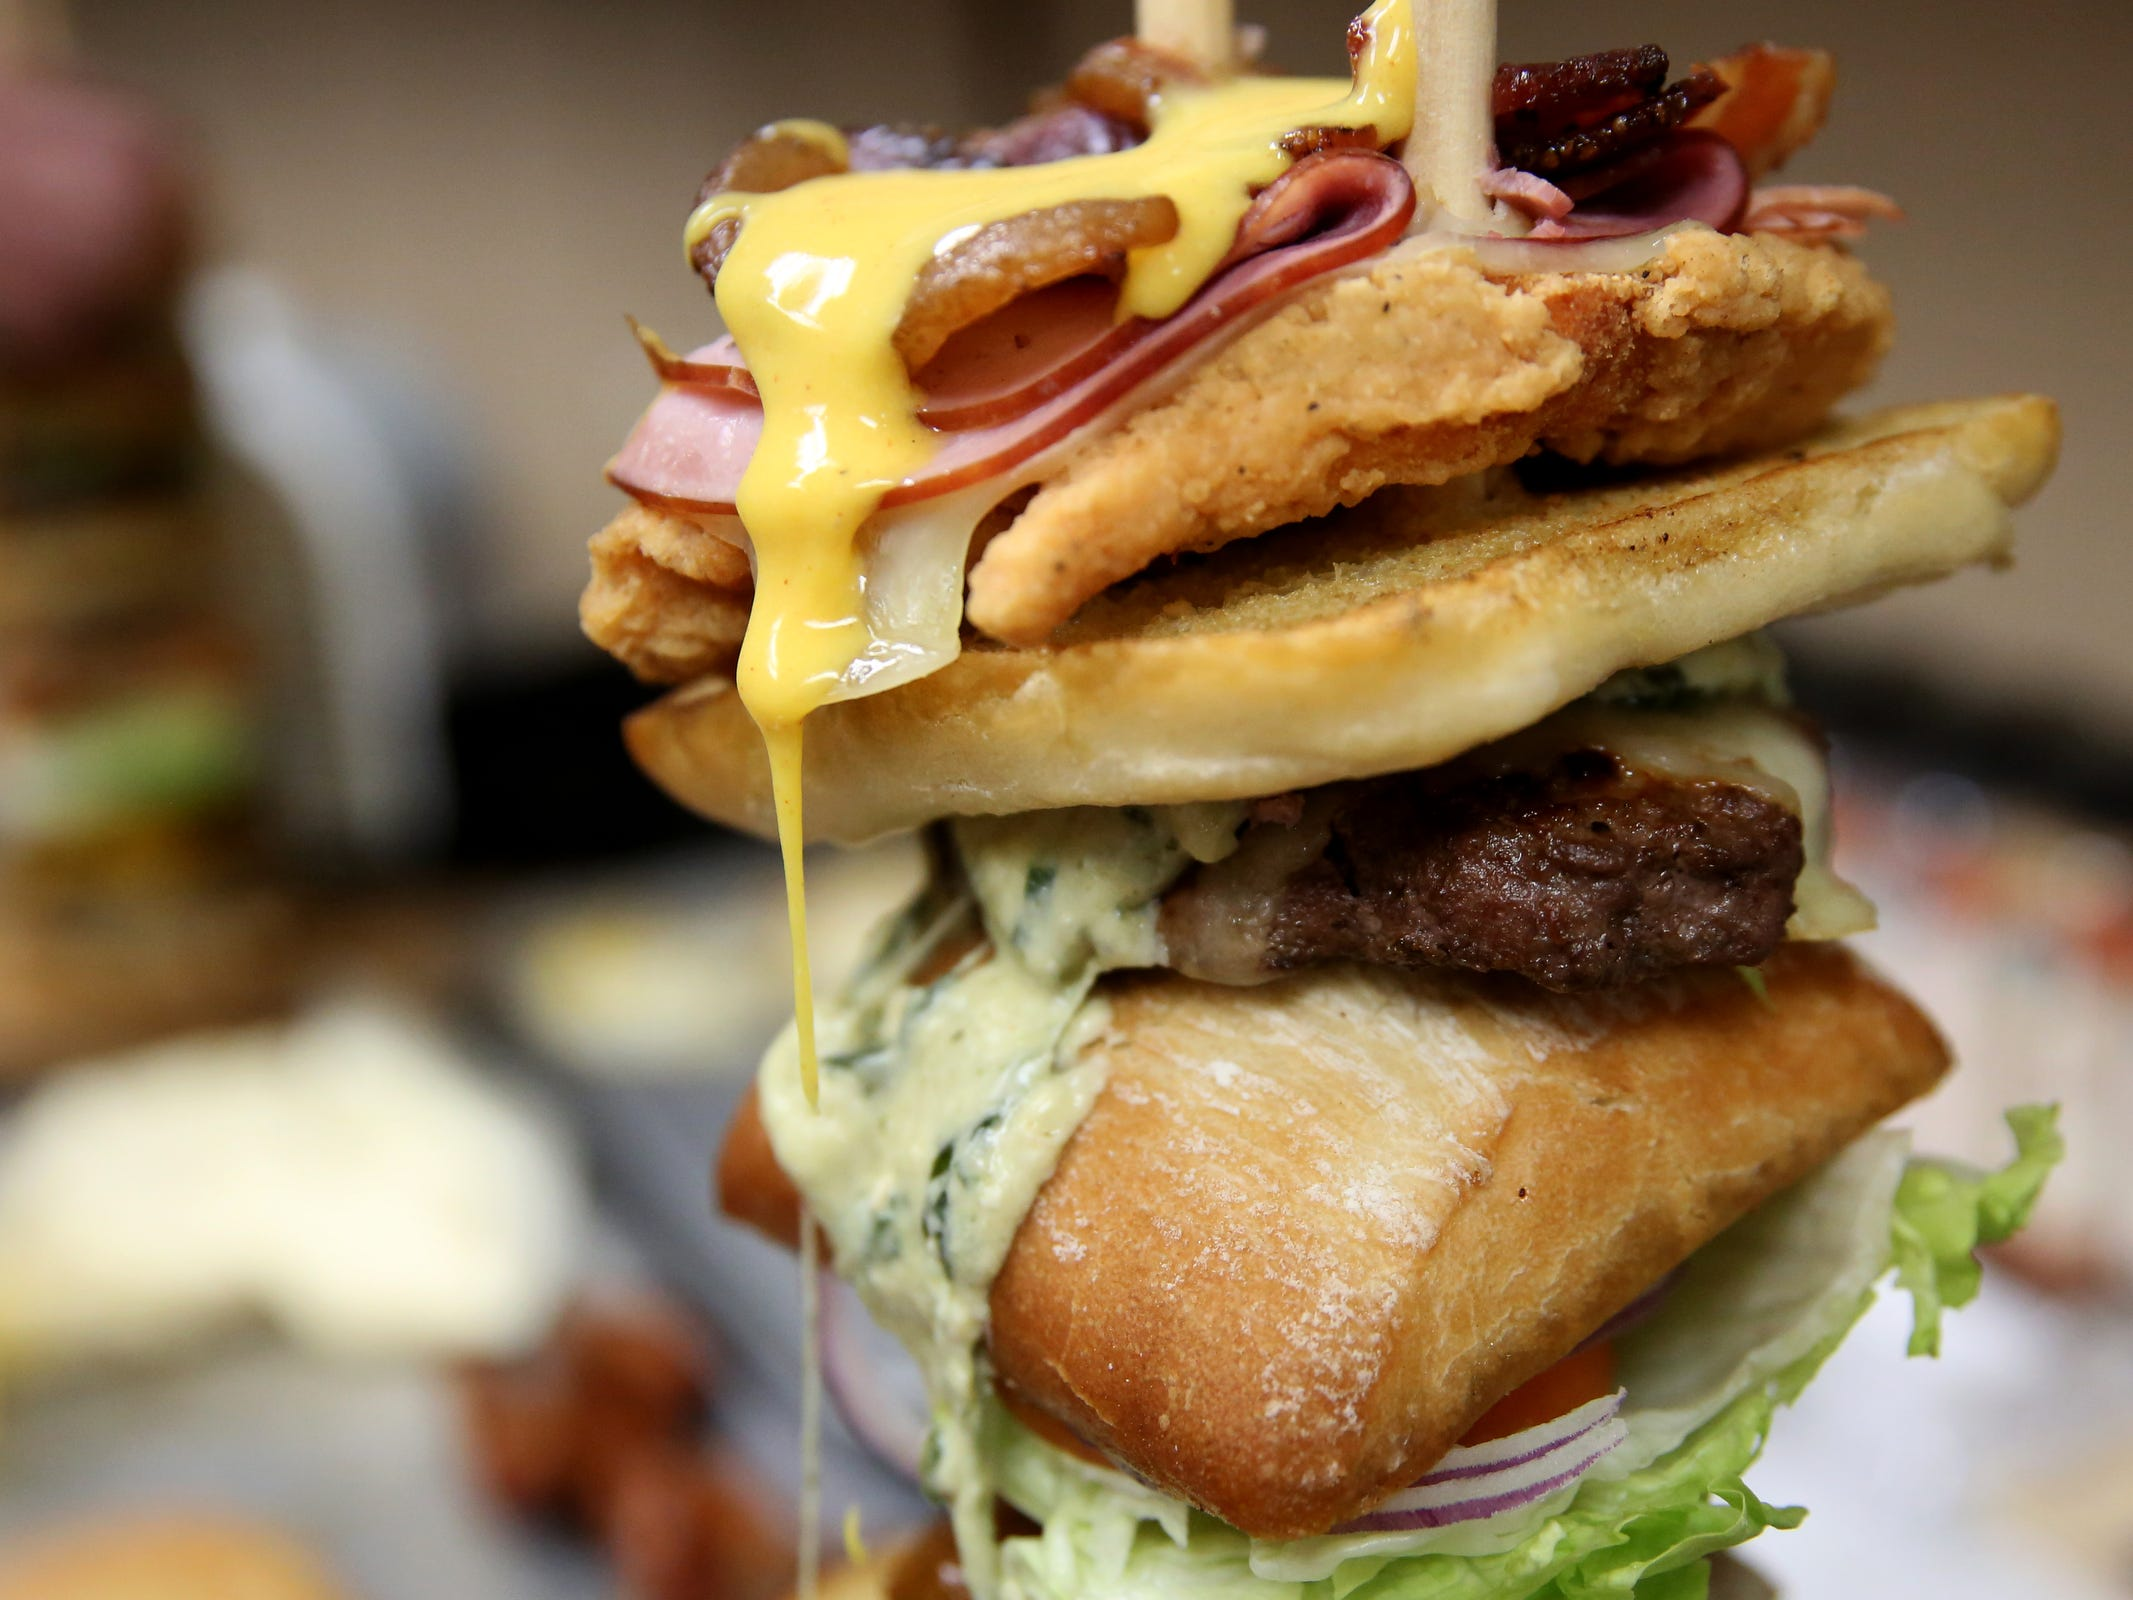 "The burgers are stacked for a Statesman Journal eating challenge against professional competitive eater ""Max Carnage"" to finish the Dark Knight Burger, consisting of six top-selling burgers, at Heroes Tap House in Salem on March 22, 2019. The Statesman Journal crew finished the stack in 35 minutes."